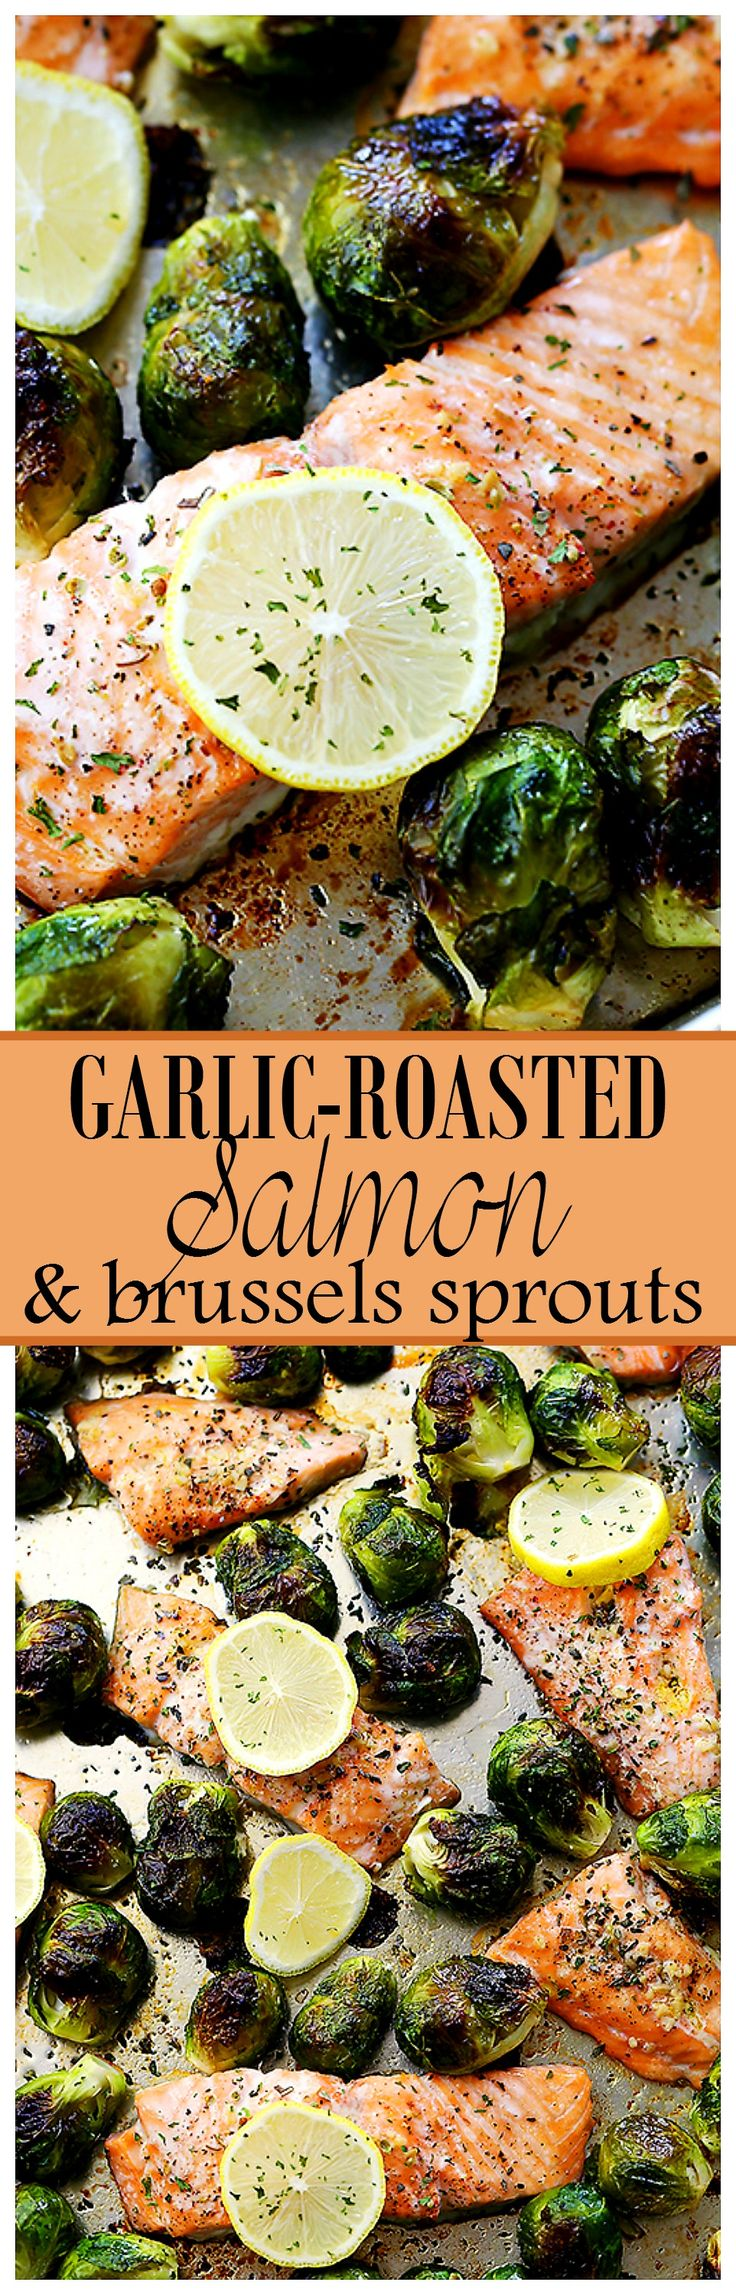 One Sheet Pan Garlic Roasted Salmon with Brussels Sprouts | www.diethood.com | Incredibly delicious, garlicky, super flavorful one-pan dinner with oven-roasted salmon and brussels sprouts.